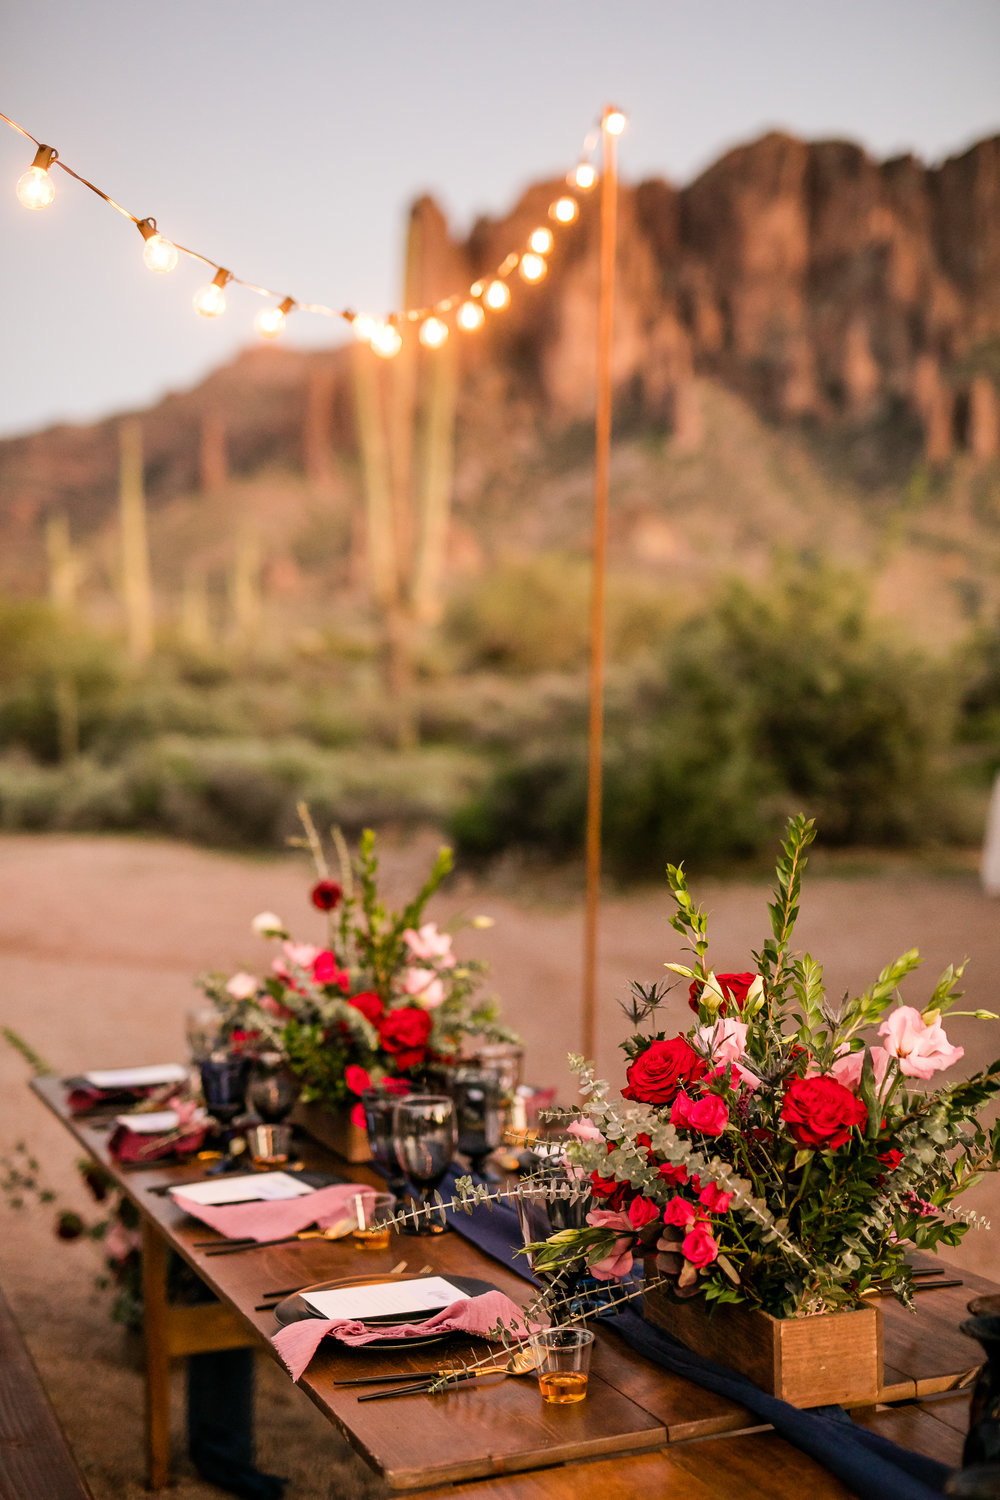 Brock & Megan's Intimate Superstition Mountain Wedding - Farm Table Reception with String Lights, burgundy and blush flowers, and black place settings